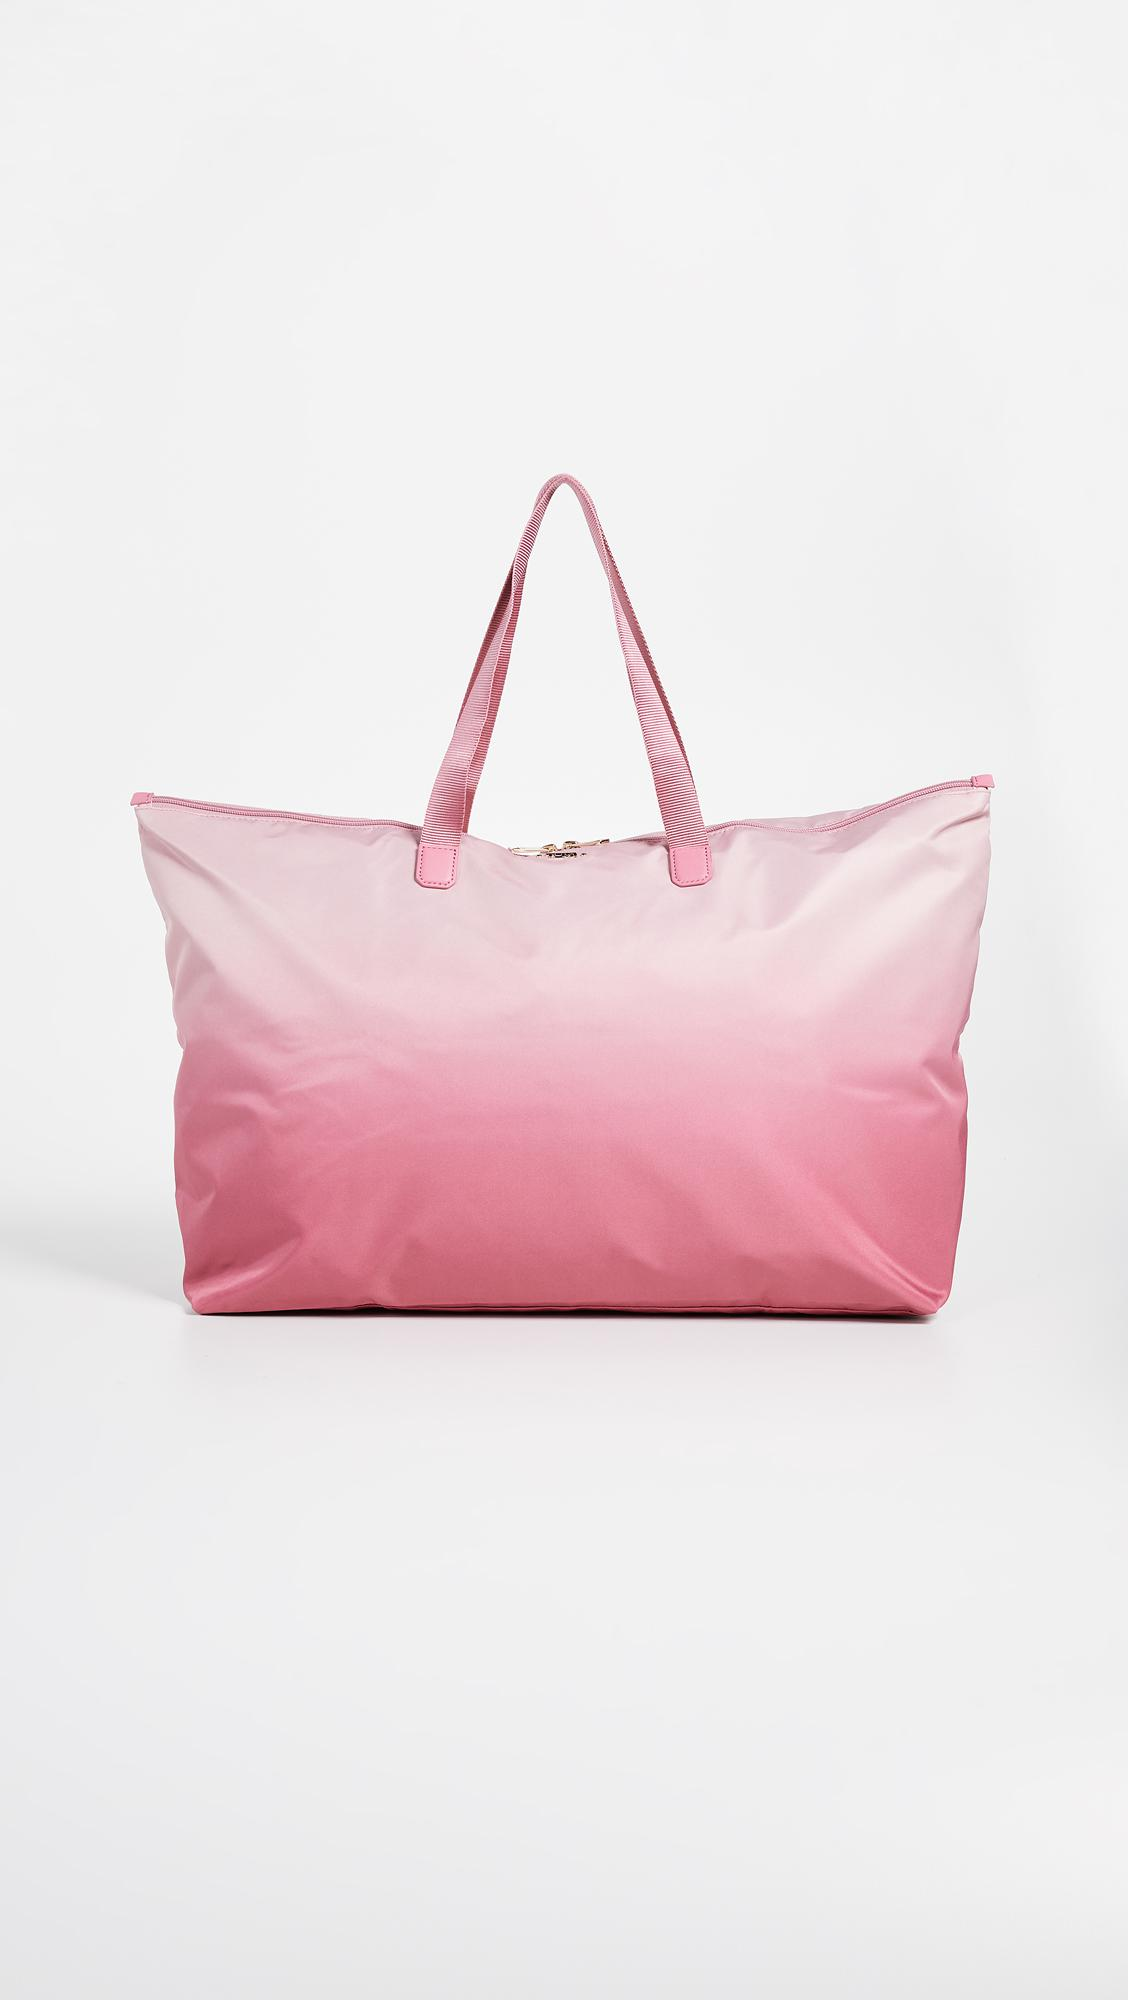 b343bbb5a Tumi Voyageur Just In Case Tote Bag in Pink - Lyst